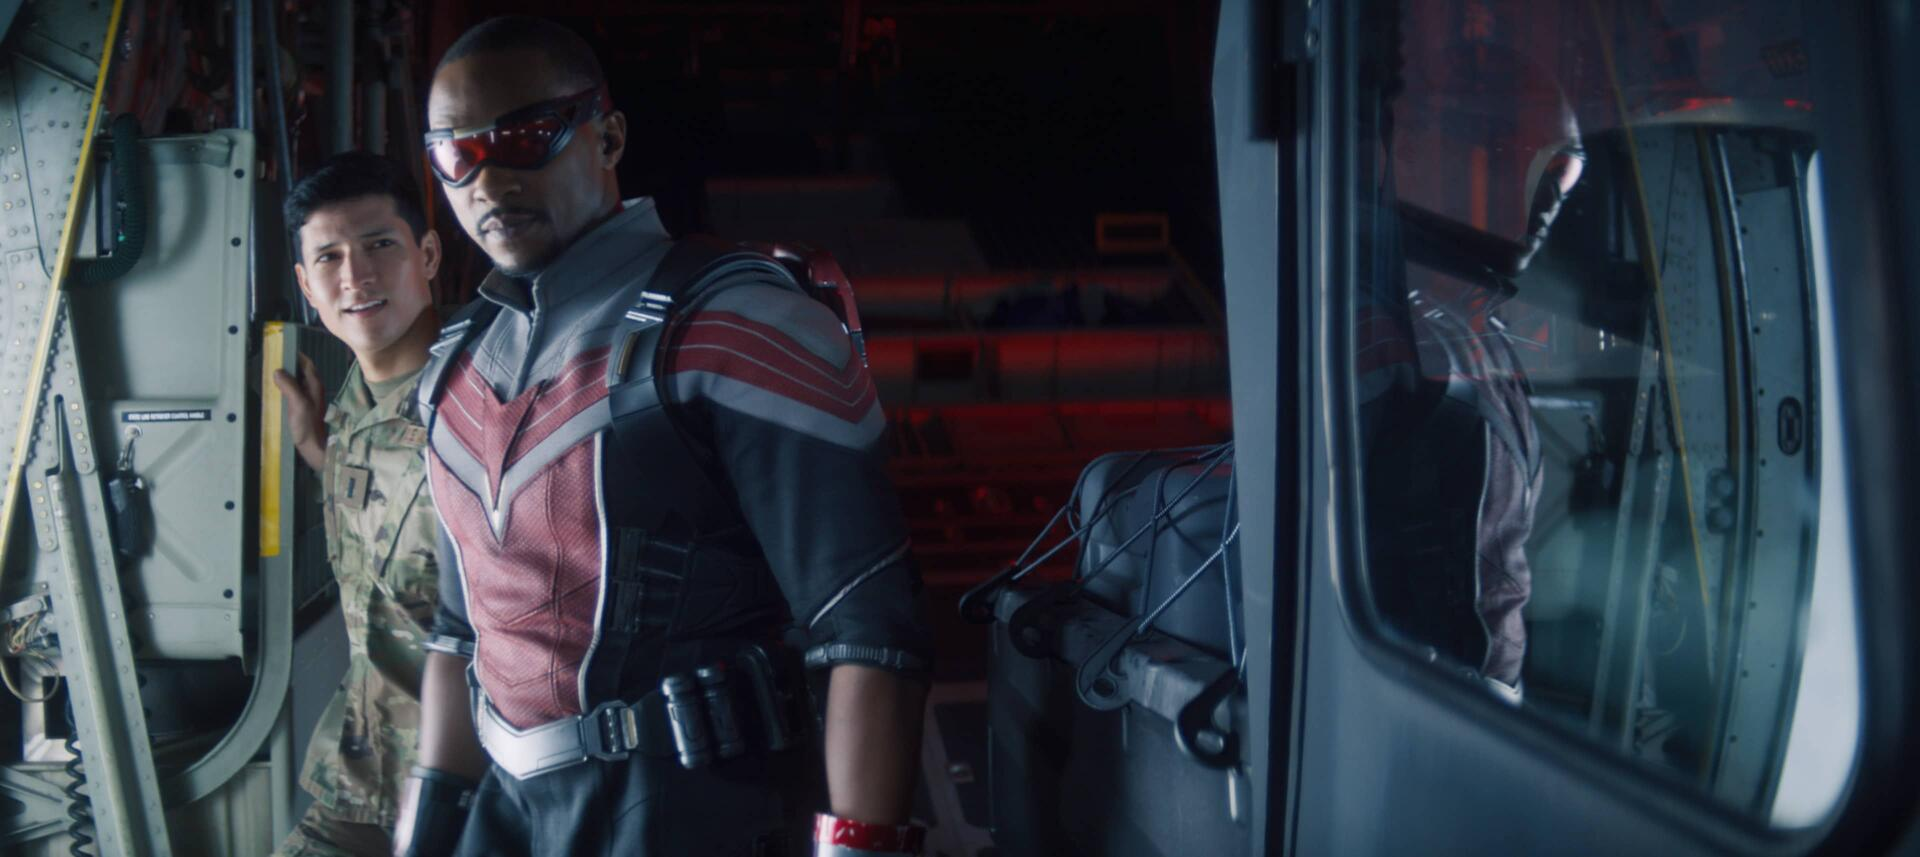 'The Falcon and The Winter Soldier' Episode 2